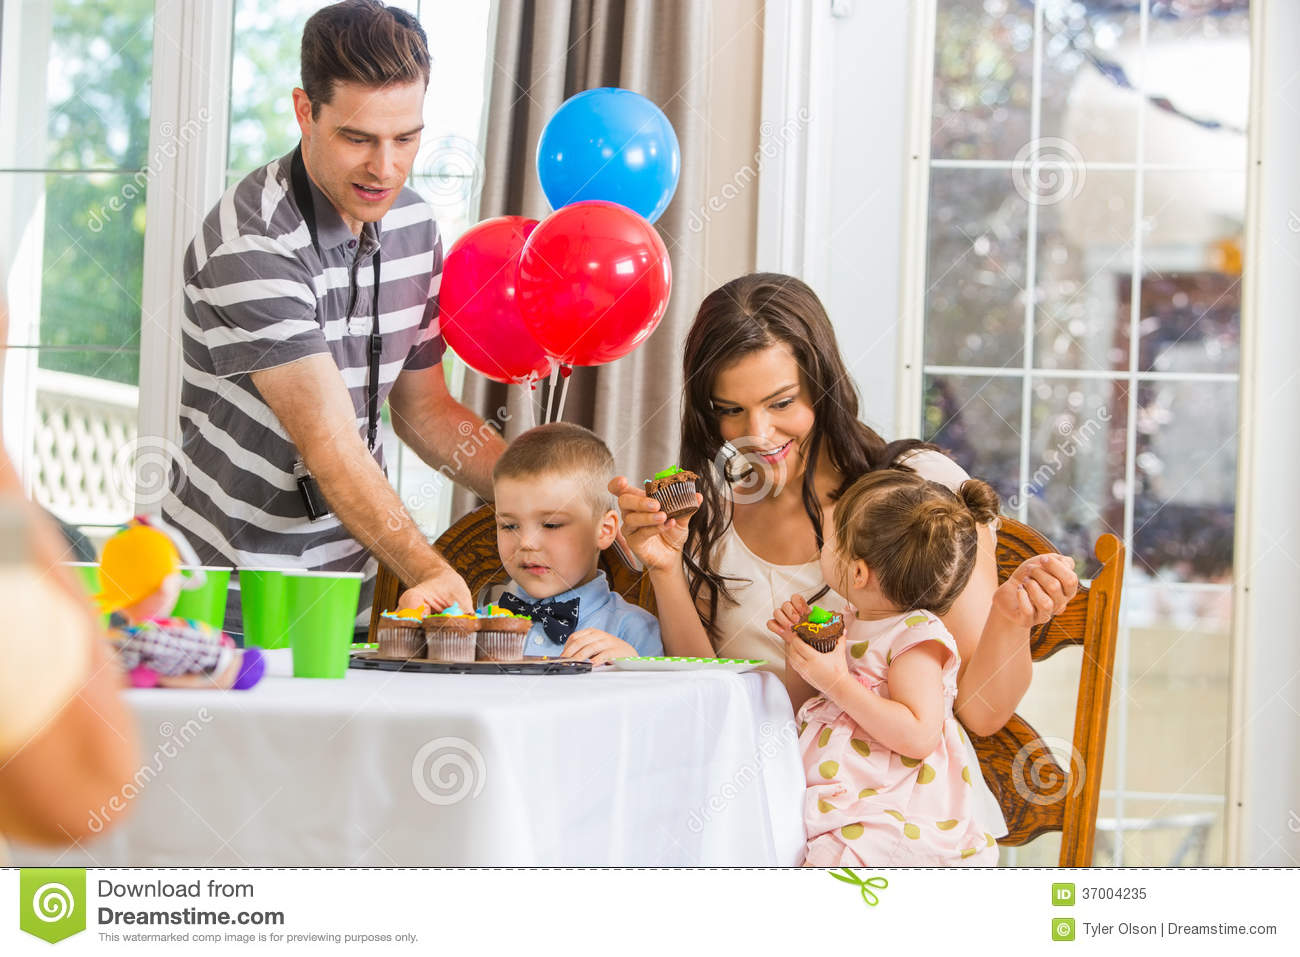 People Eating Cake Together Birthday